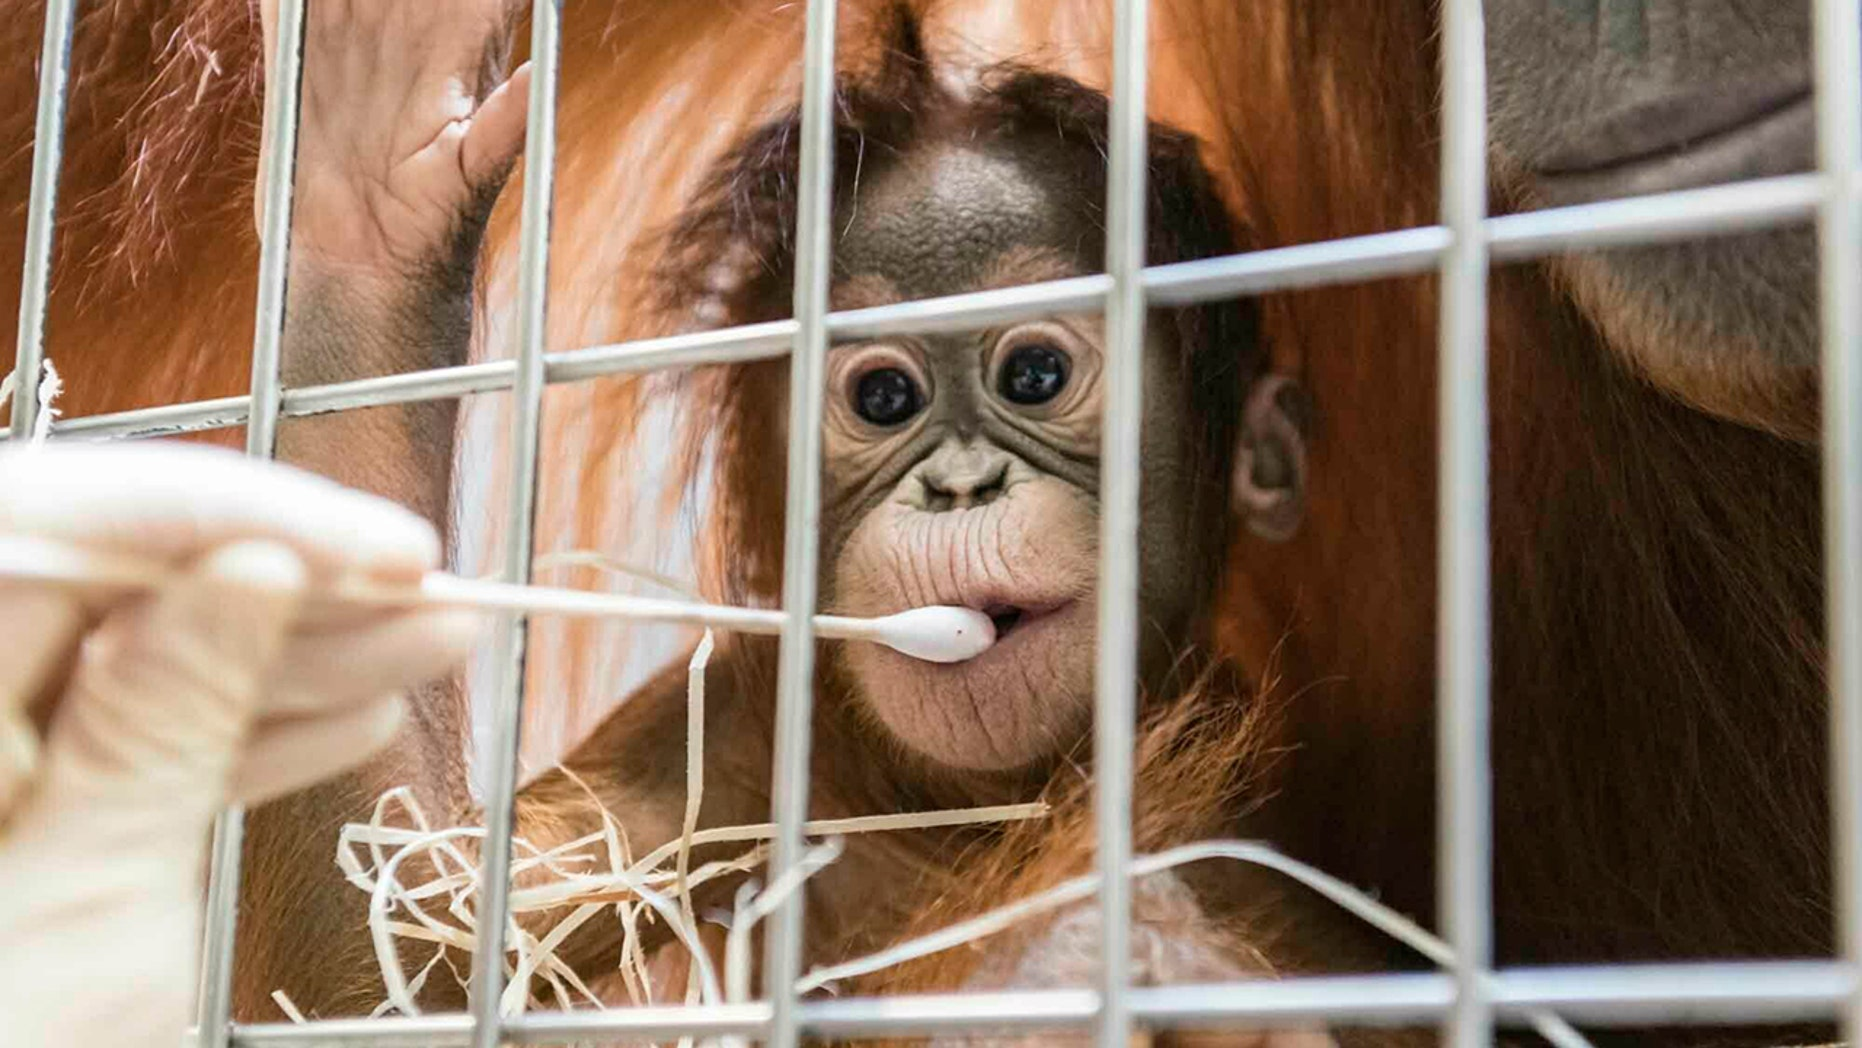 In this undated photo, released Thursday, January 31, 2019, from Zoo Basel, pet owners regularly take DNA samples from the female orangutan Cub Padma to determine their paternity. (Zoo Basel via AP)